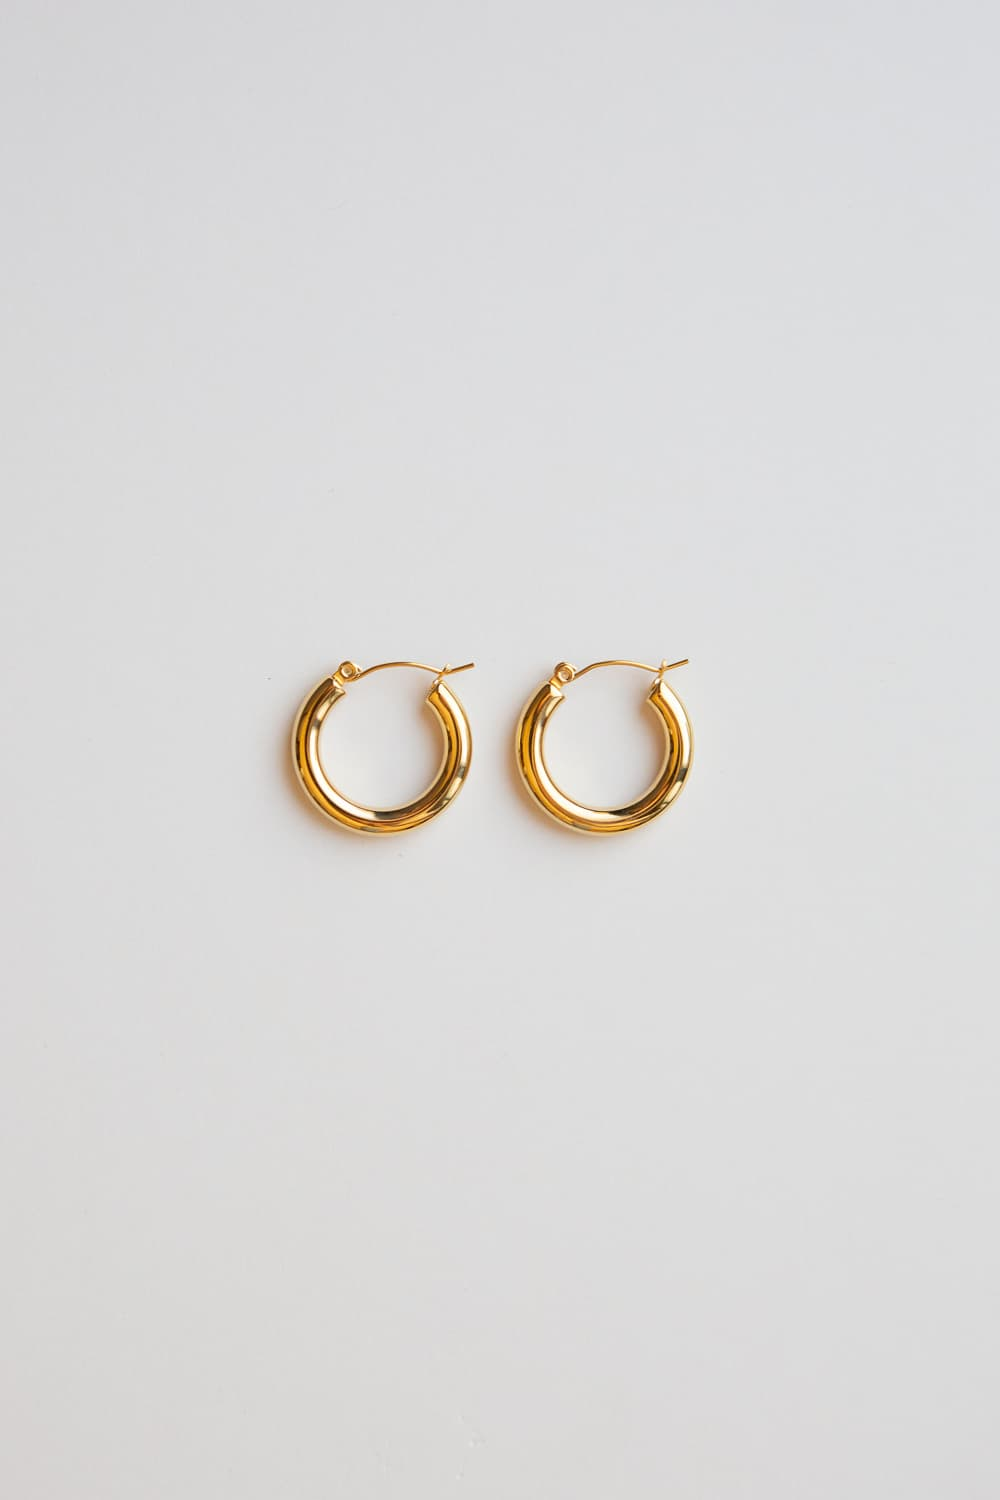 Gold Small Thick Hoop Earrings - Wynter Bloom